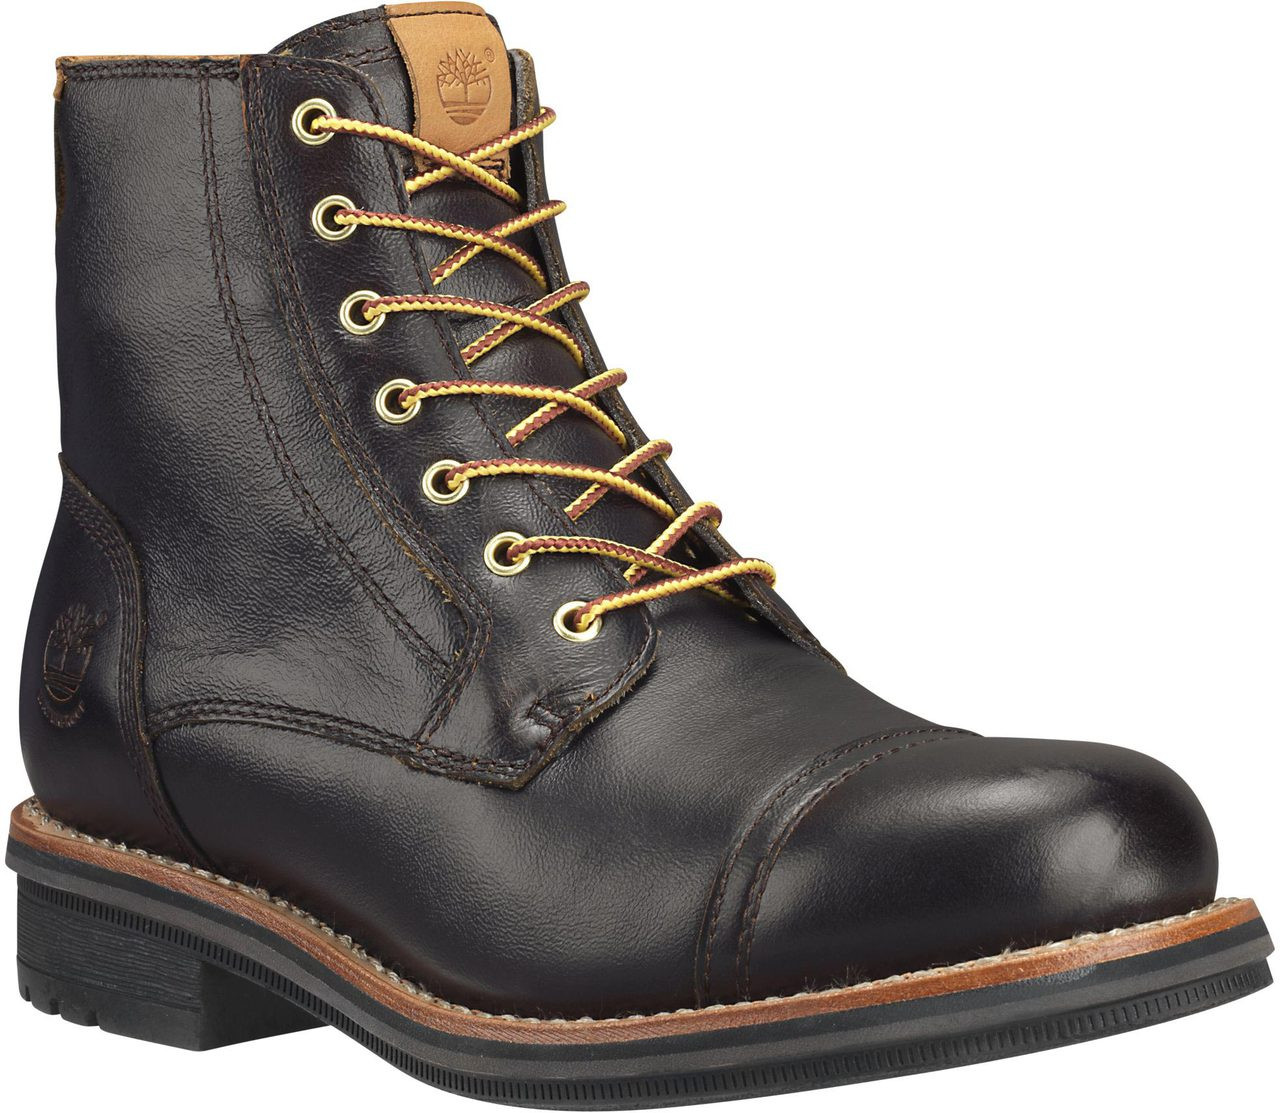 10% Off Sitewide + Free Shipping Or Get Free 2-Day Shipping With ShopRunner [Exp. 12/31] Use Timberland Coupon Code THANKYOU16 $30 Off All Women's Glancy Boots [Exp. 12/08].